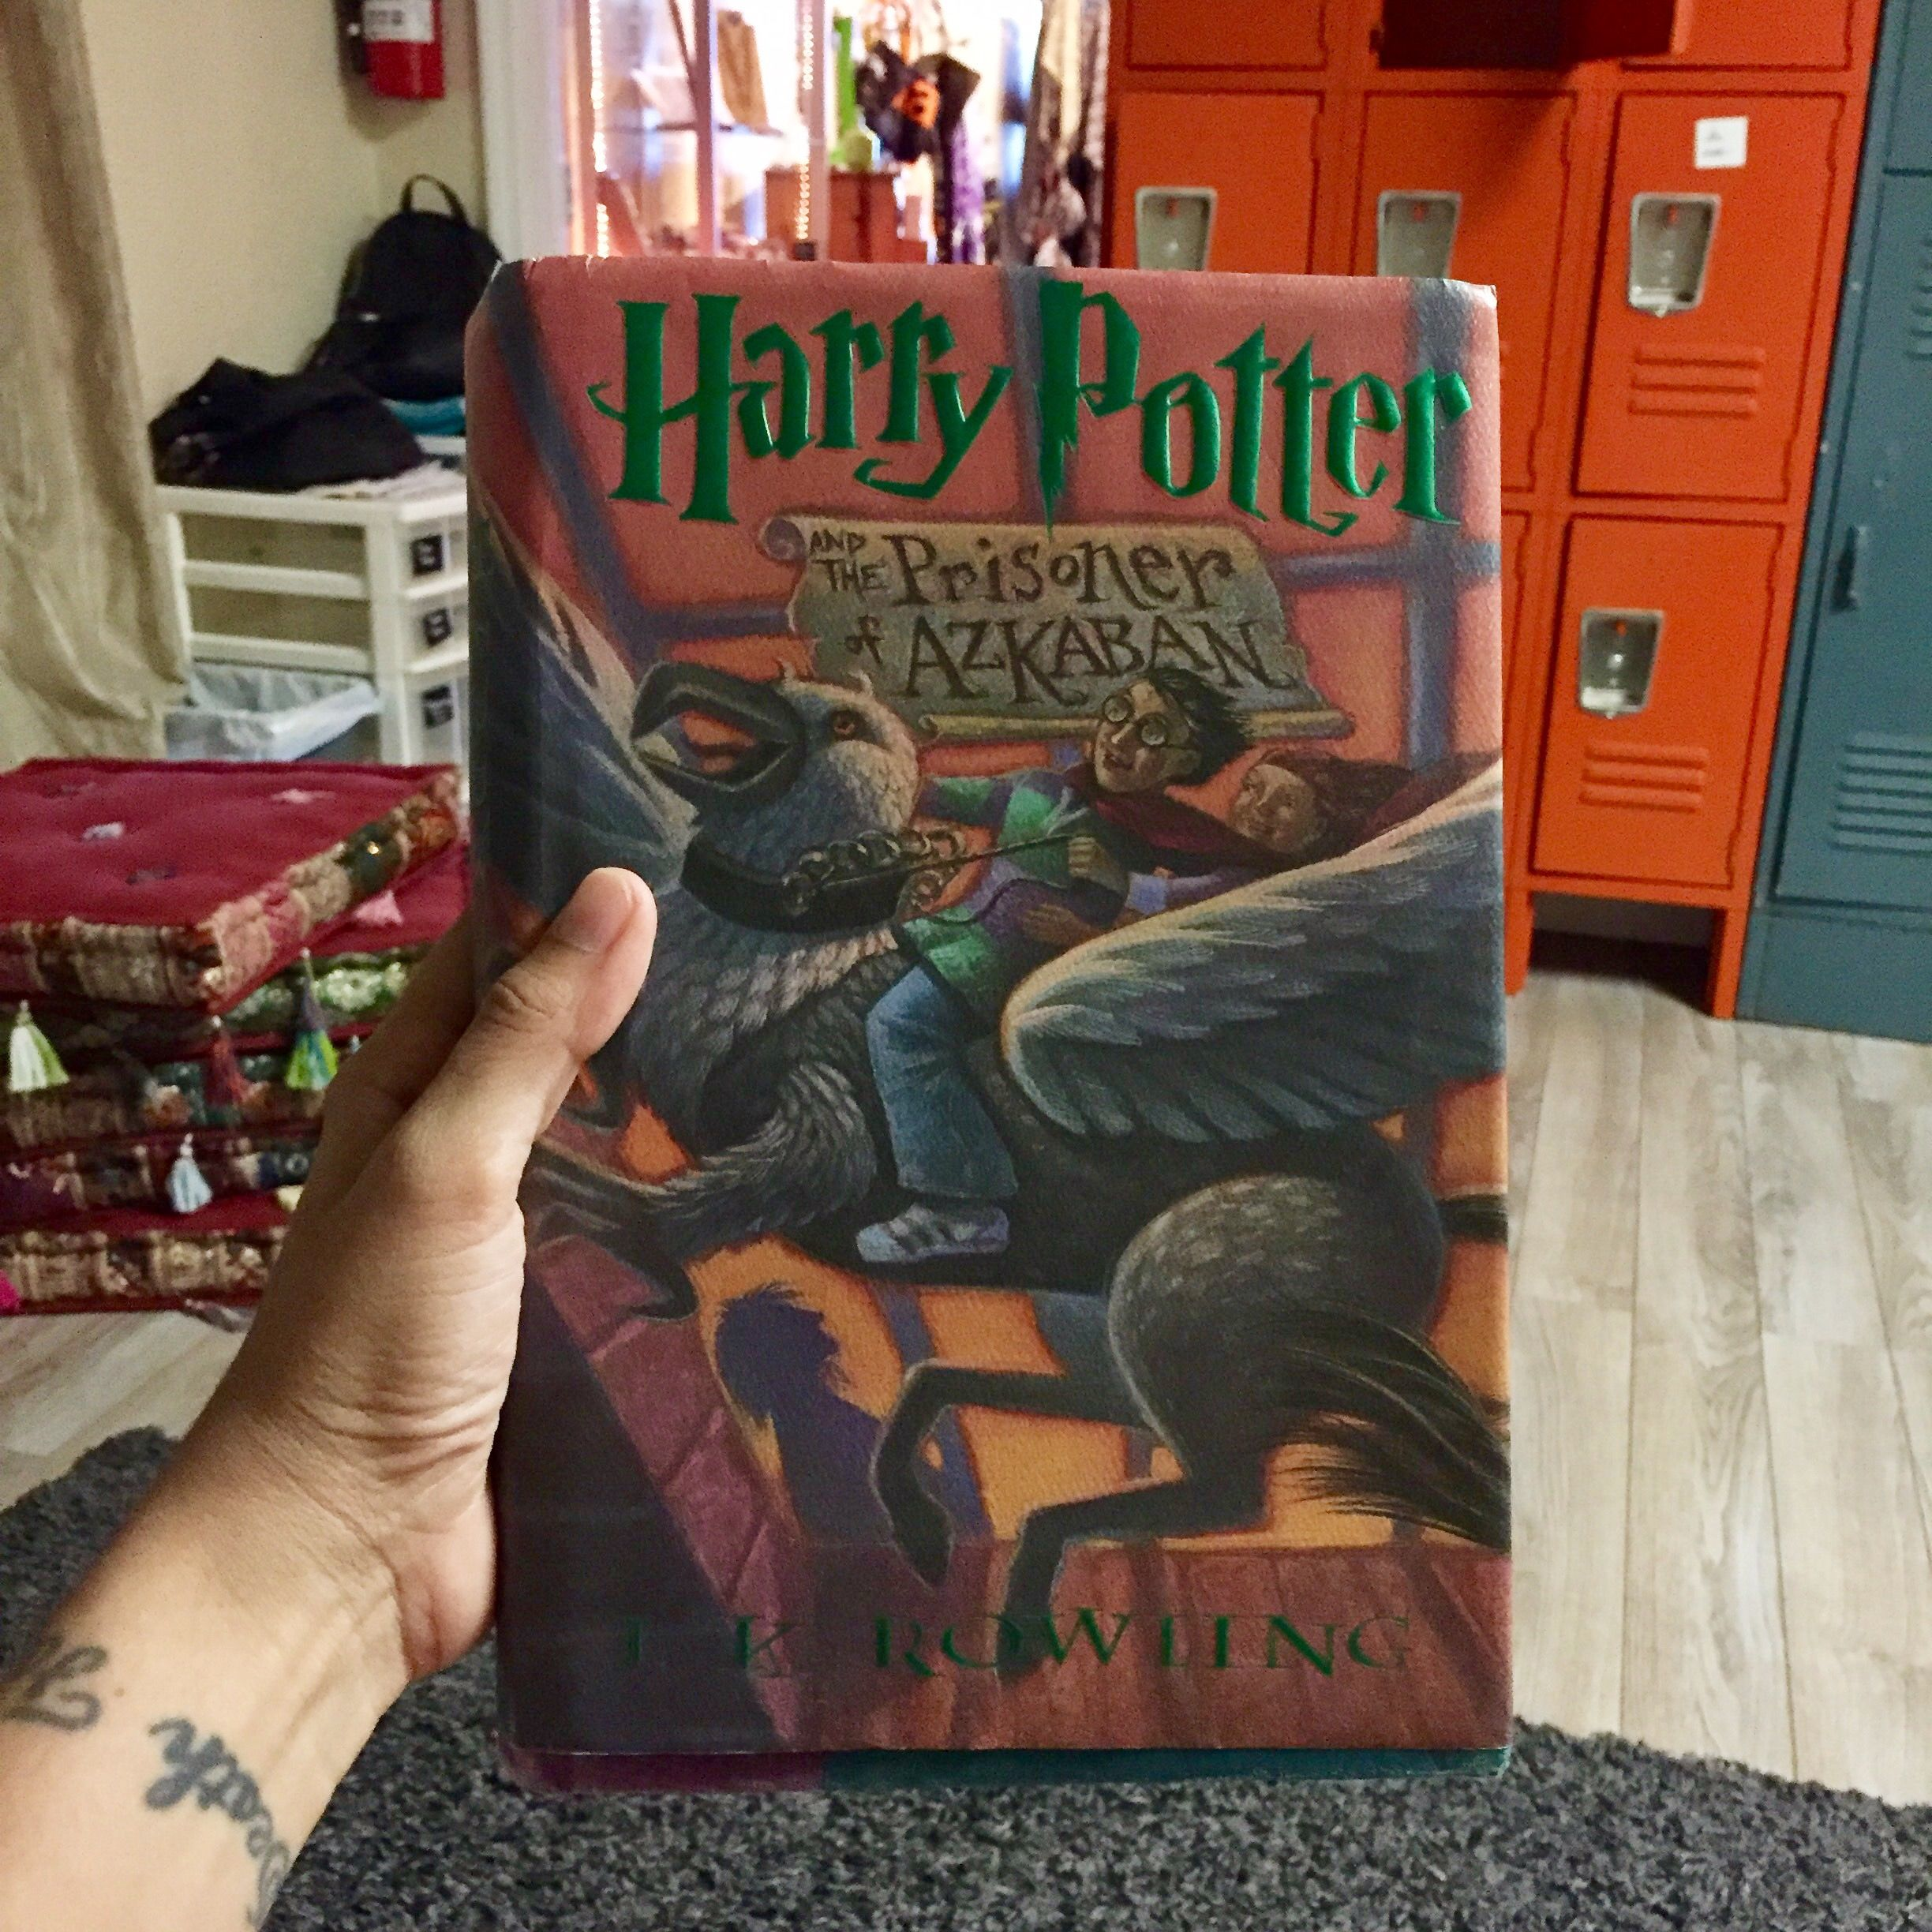 """""""Harry Potter and the Prisoner of Azkaban"""" by J.K. Rowling #nowreading #booklover"""